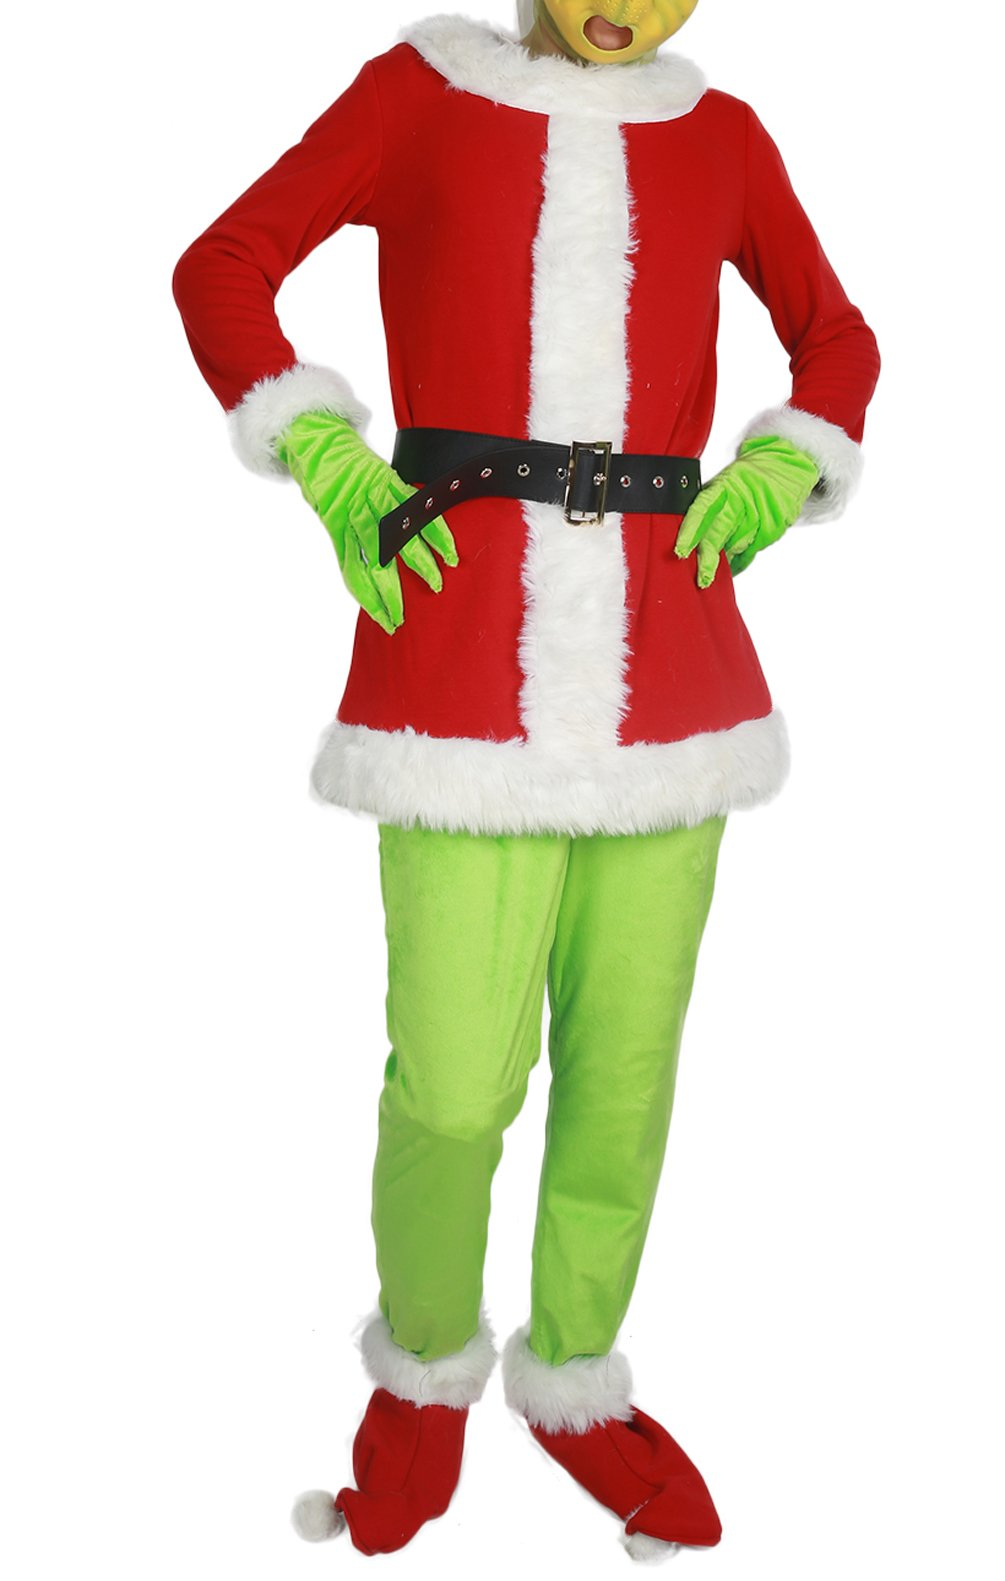 be81e2982e1 ECOS The Grinch Mask or Outfit With Hat Deluxe Adult Cosplay Costume  Accessory Xcoser